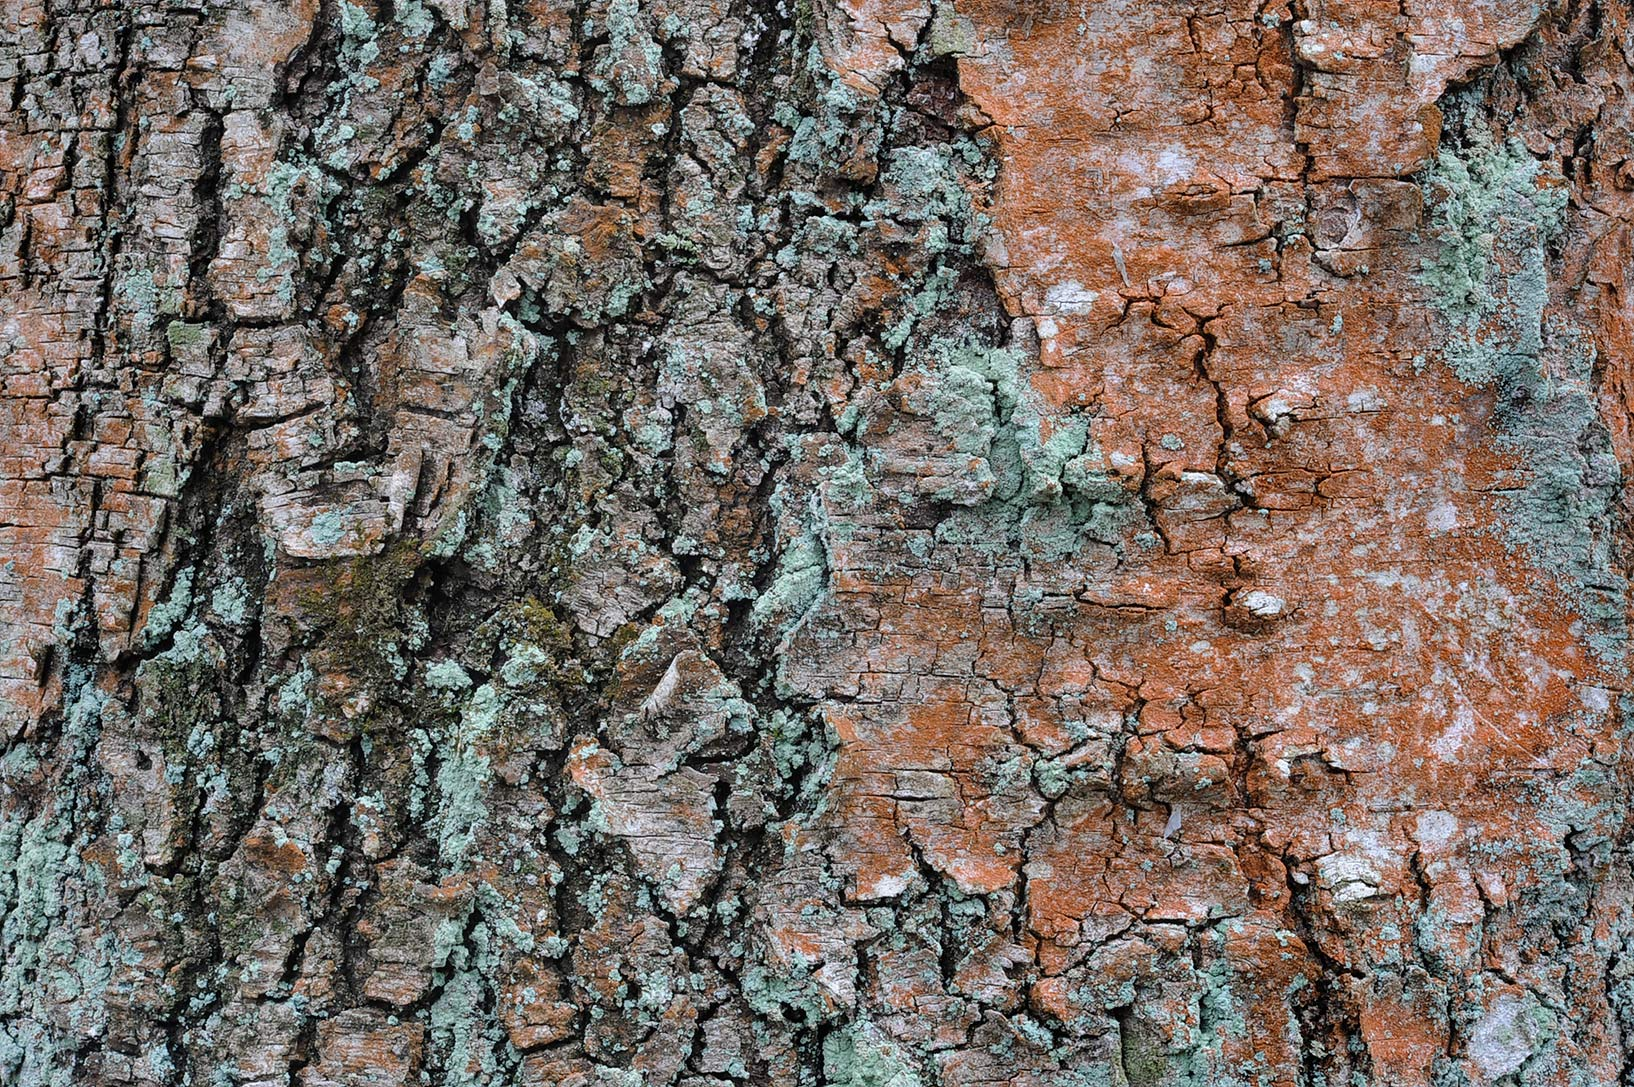 Birch bark with orange carotenoid pigments of...suburb of St.Petersburg, Russia